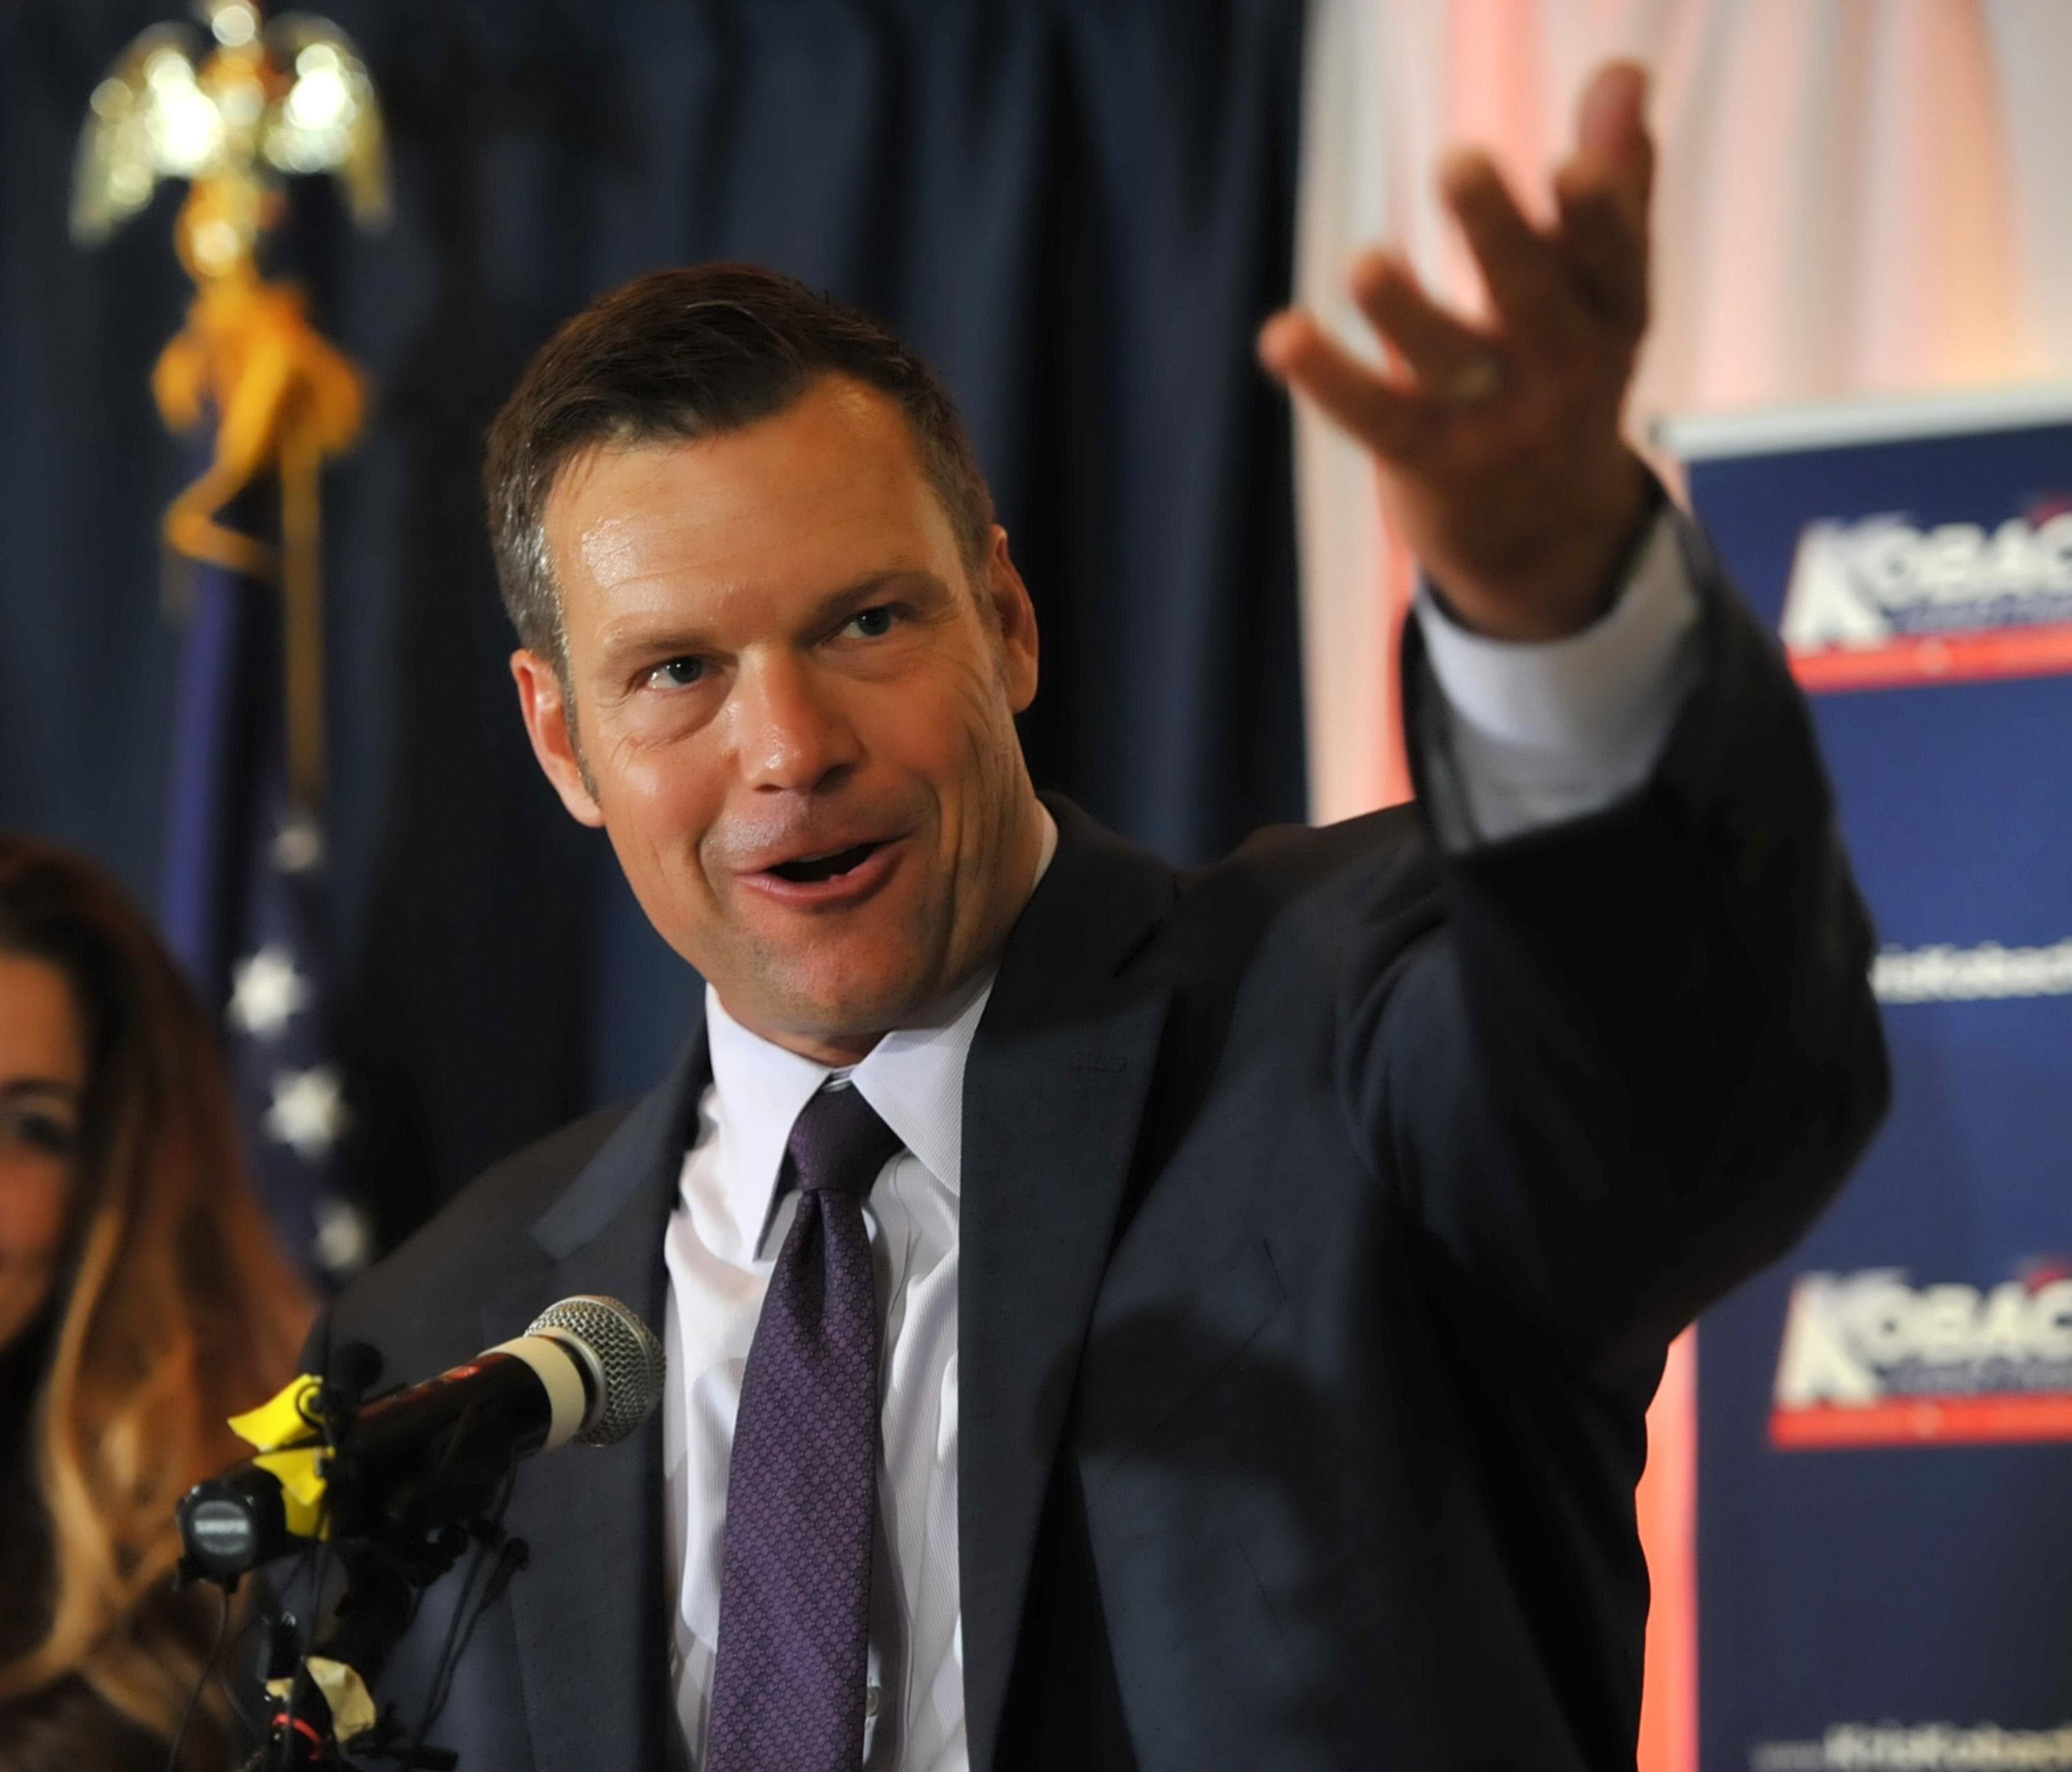 Republican primary candidate for Governor Kris Kobach speaks to supporters on election night in Topeka, Kansas.